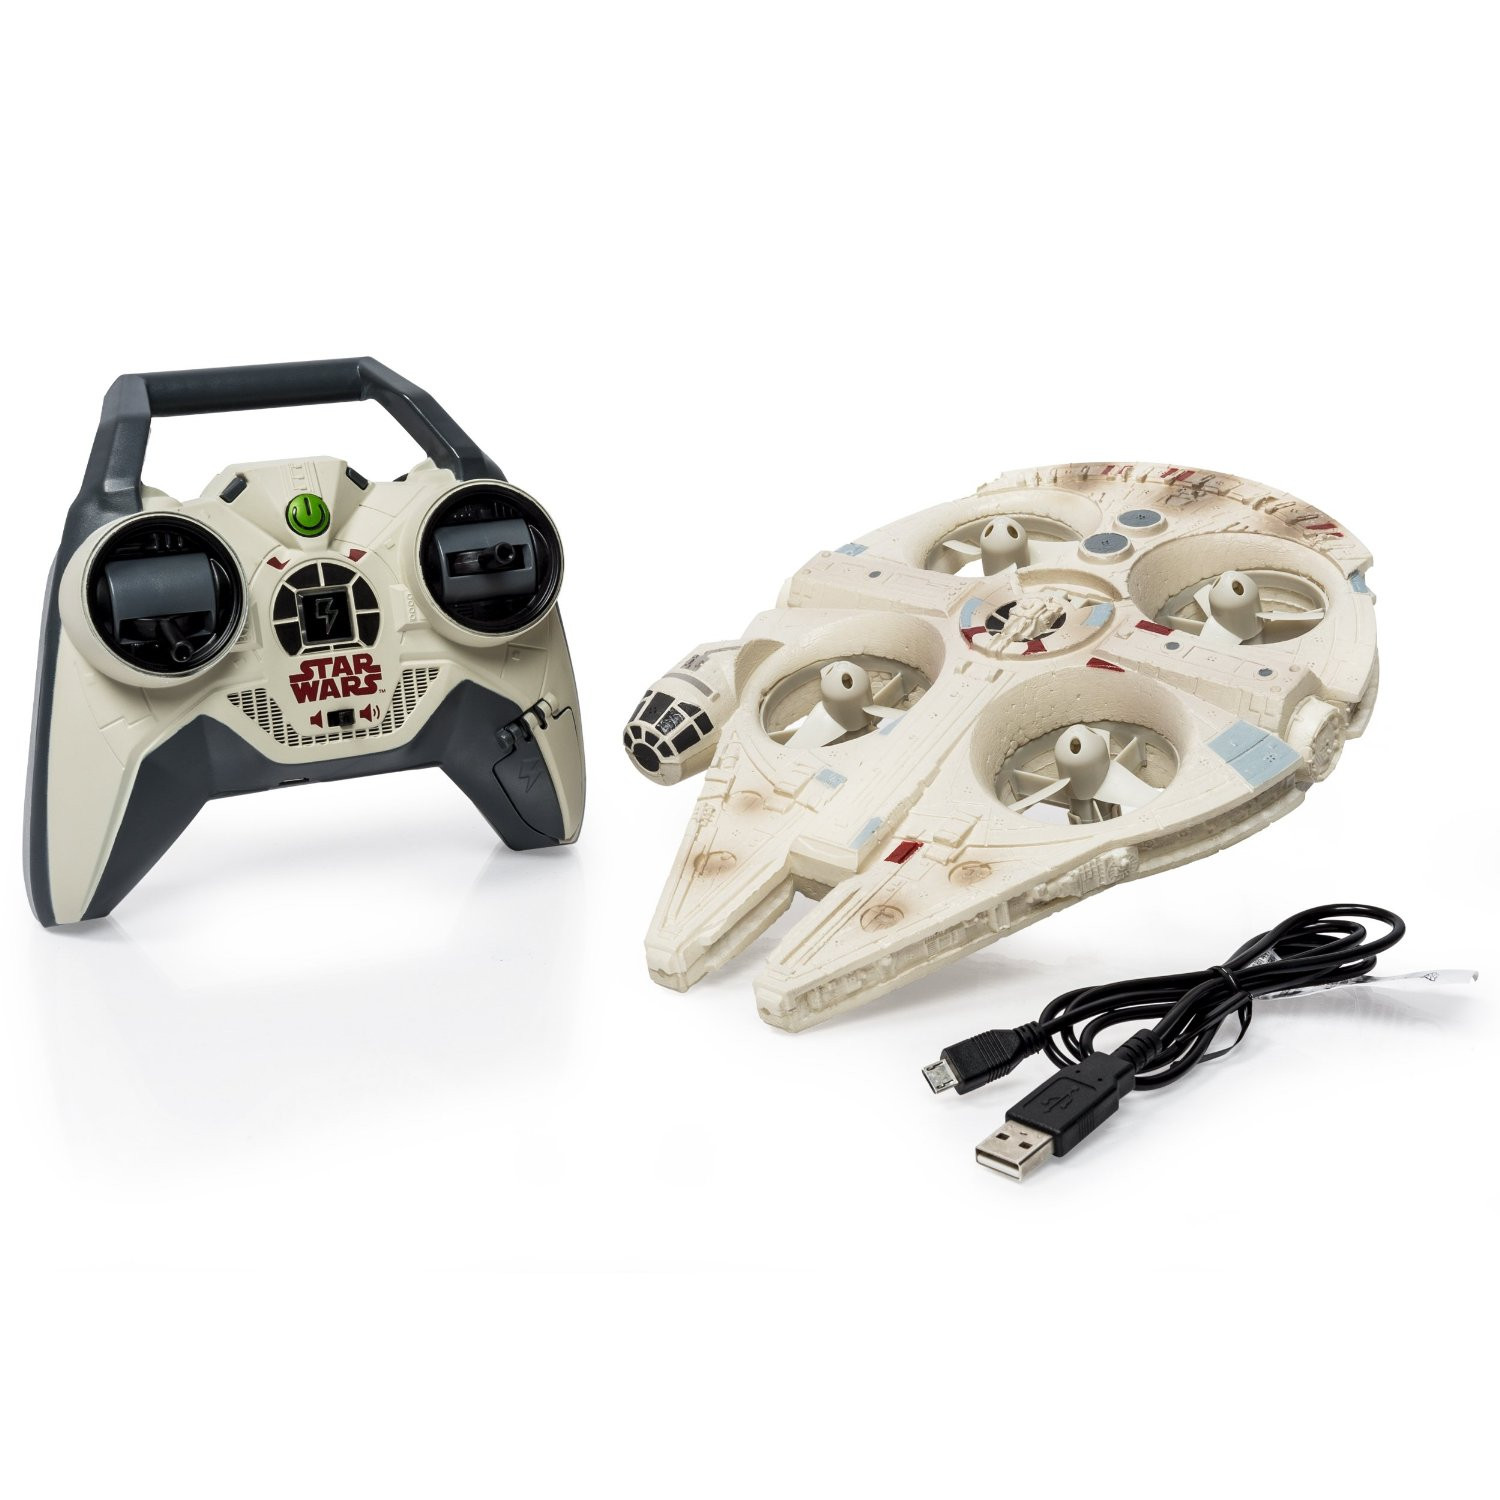 Best ideas about Star Wars Gift Ideas For Him . Save or Pin Star Wars Gifts For Him Now.